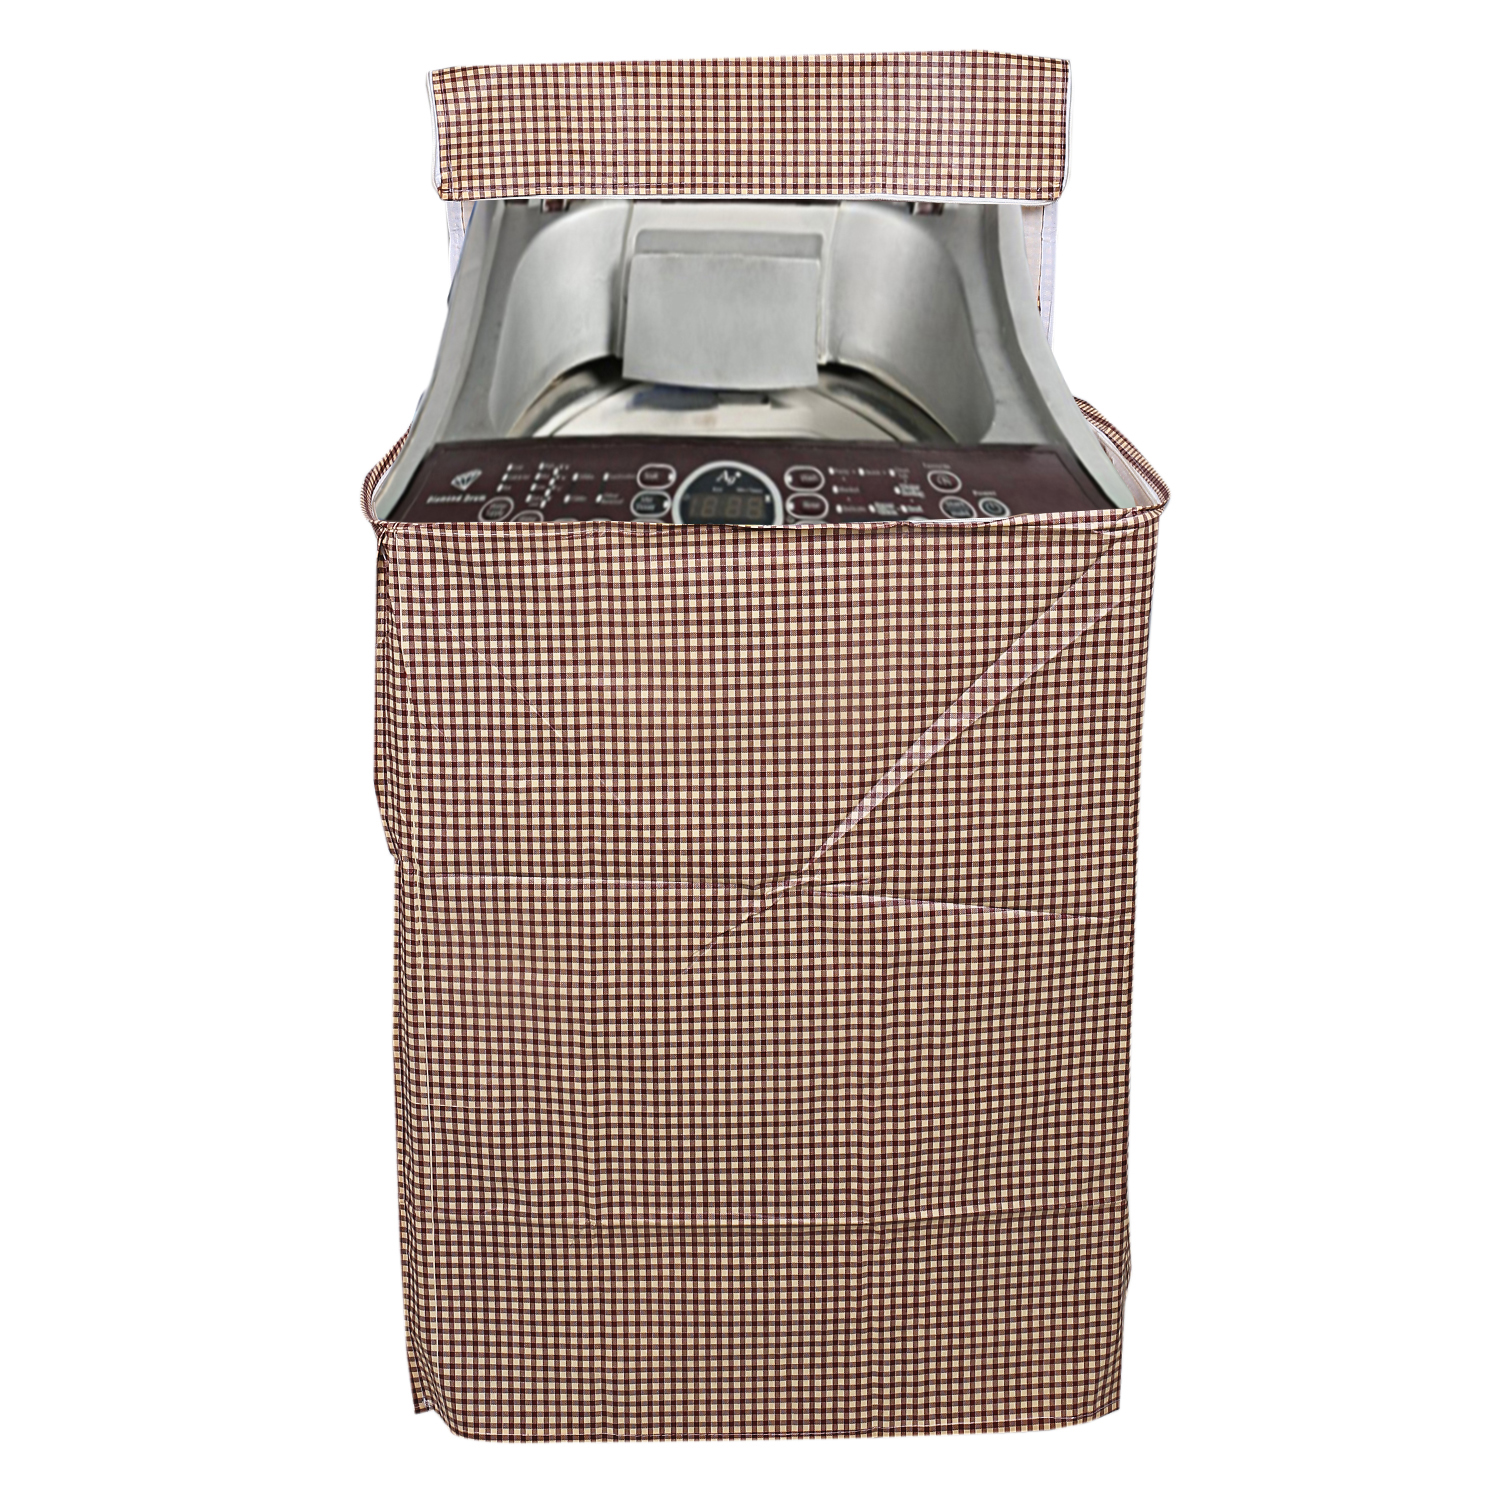 Kuber Industries PVC Top Load Fully Automatic Washing Machine Cover (Brown)